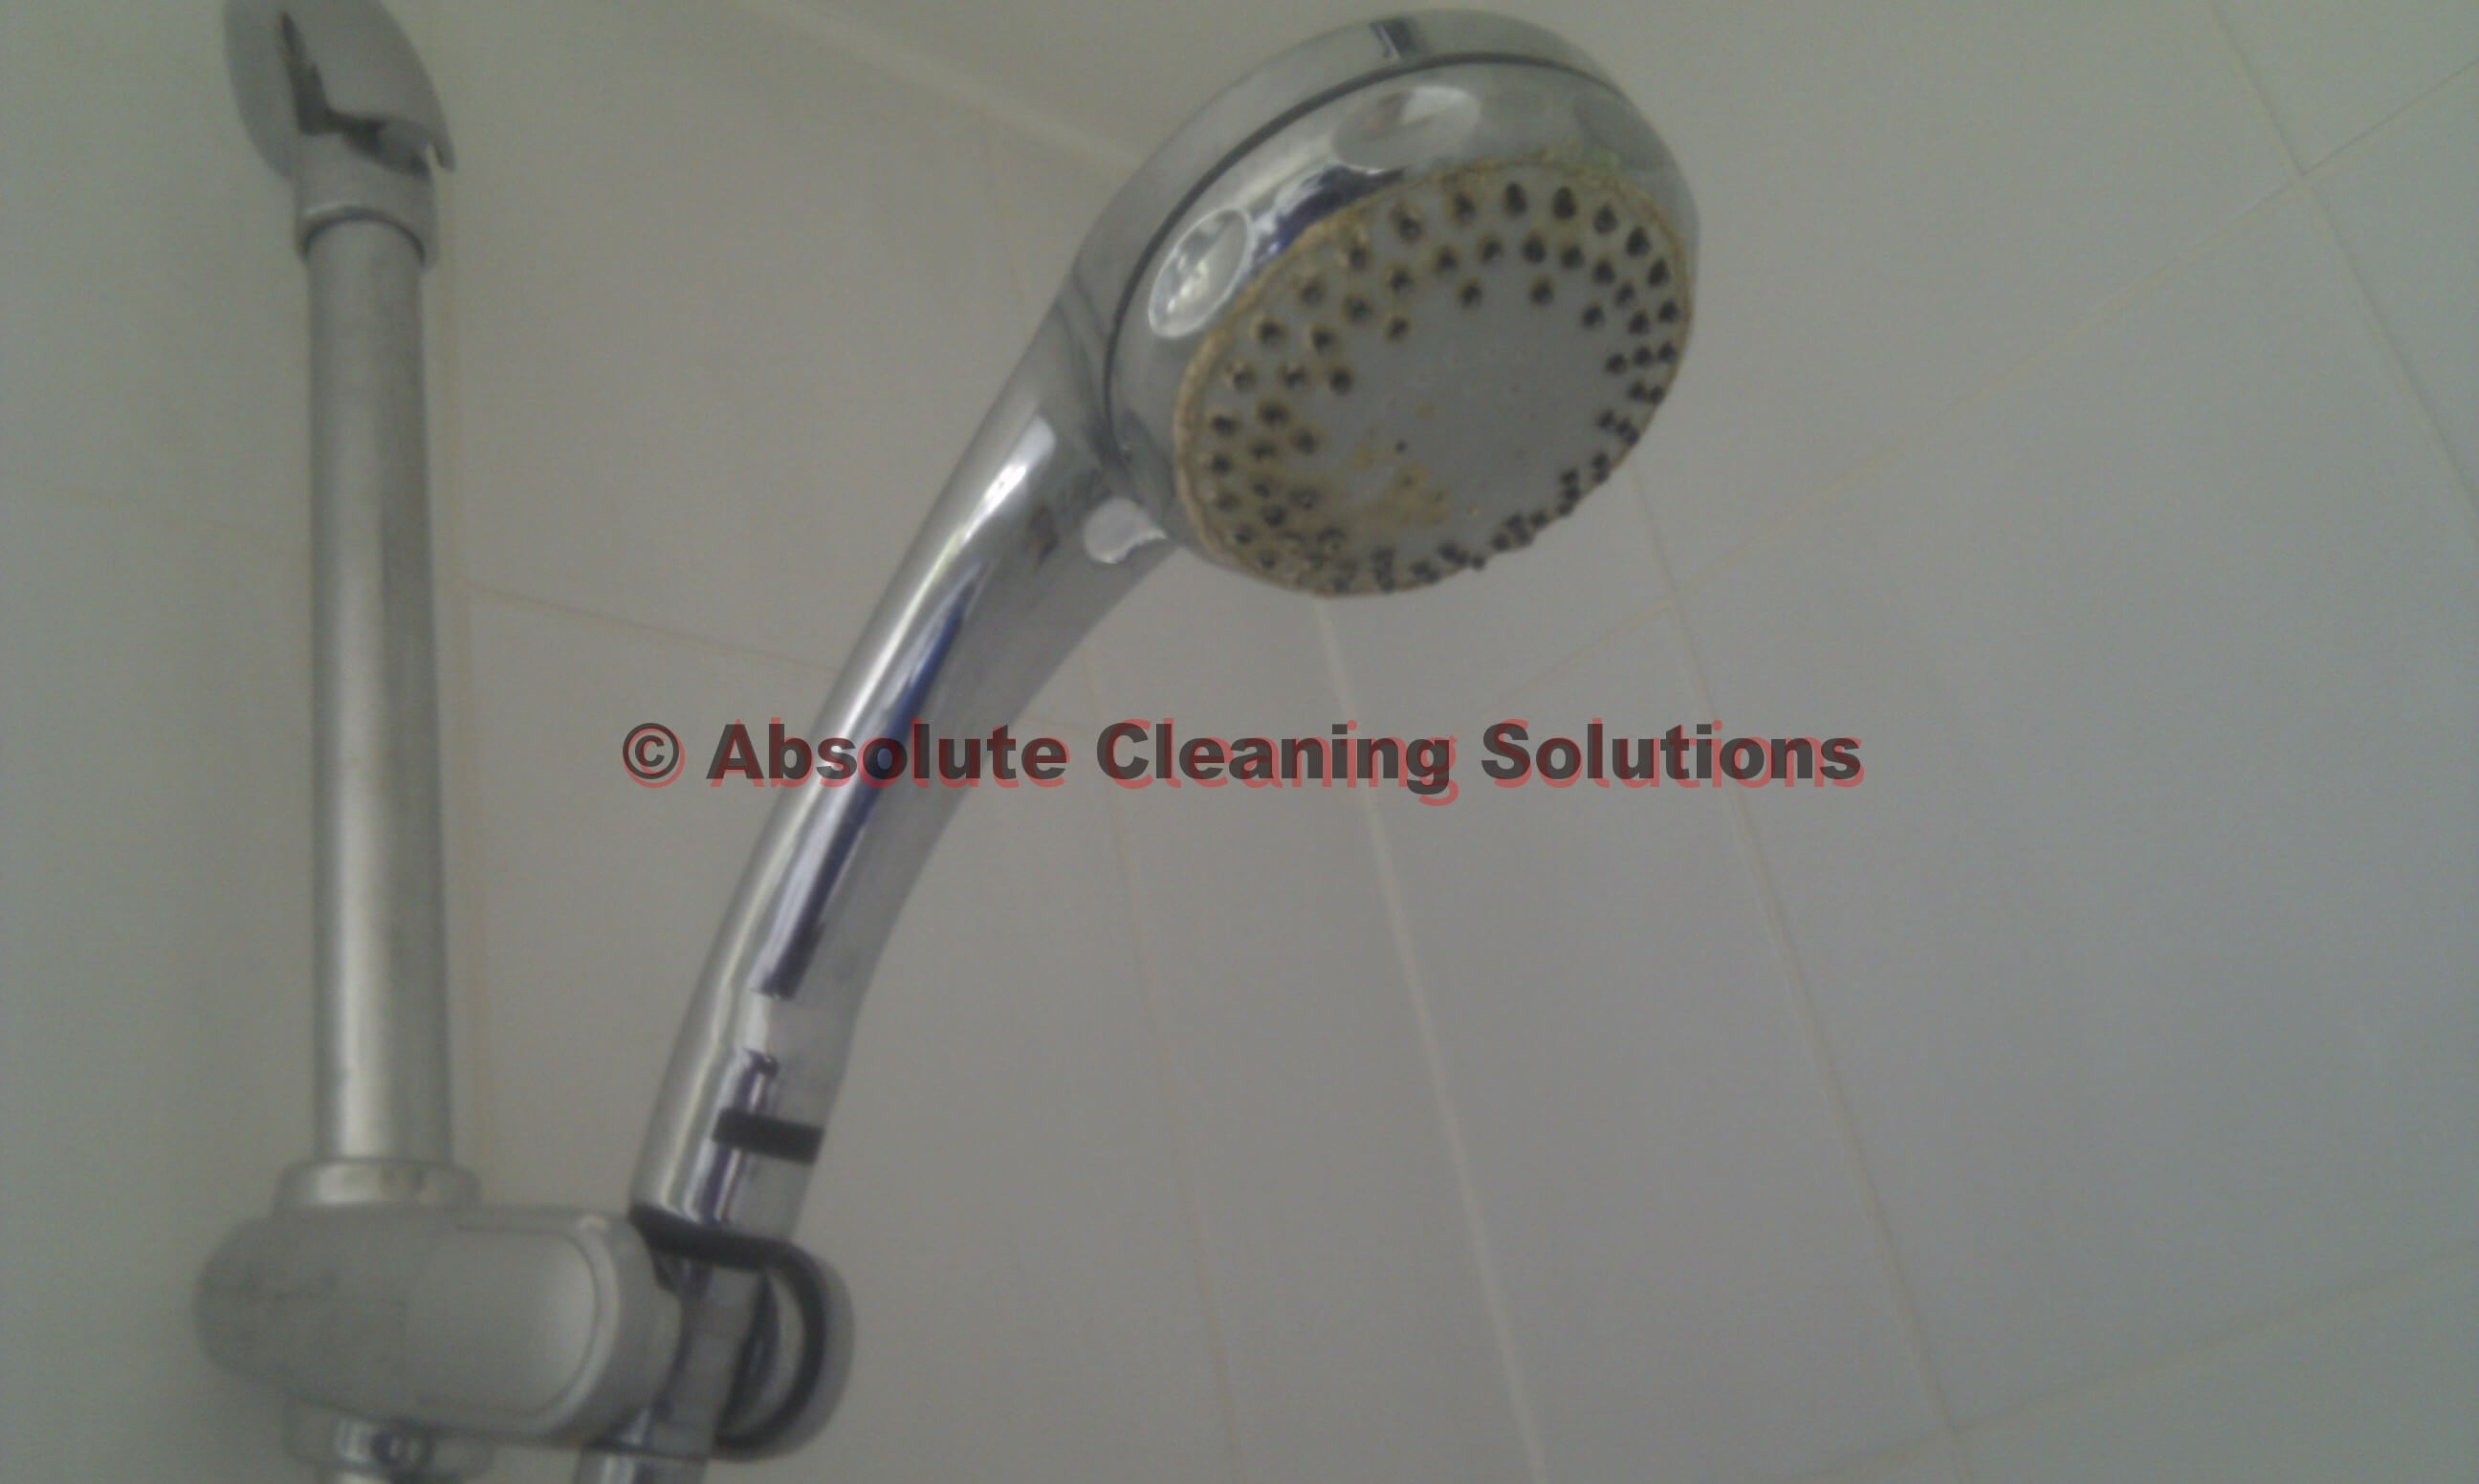 descale shower head cleaner 1 absolutecleaning. Black Bedroom Furniture Sets. Home Design Ideas